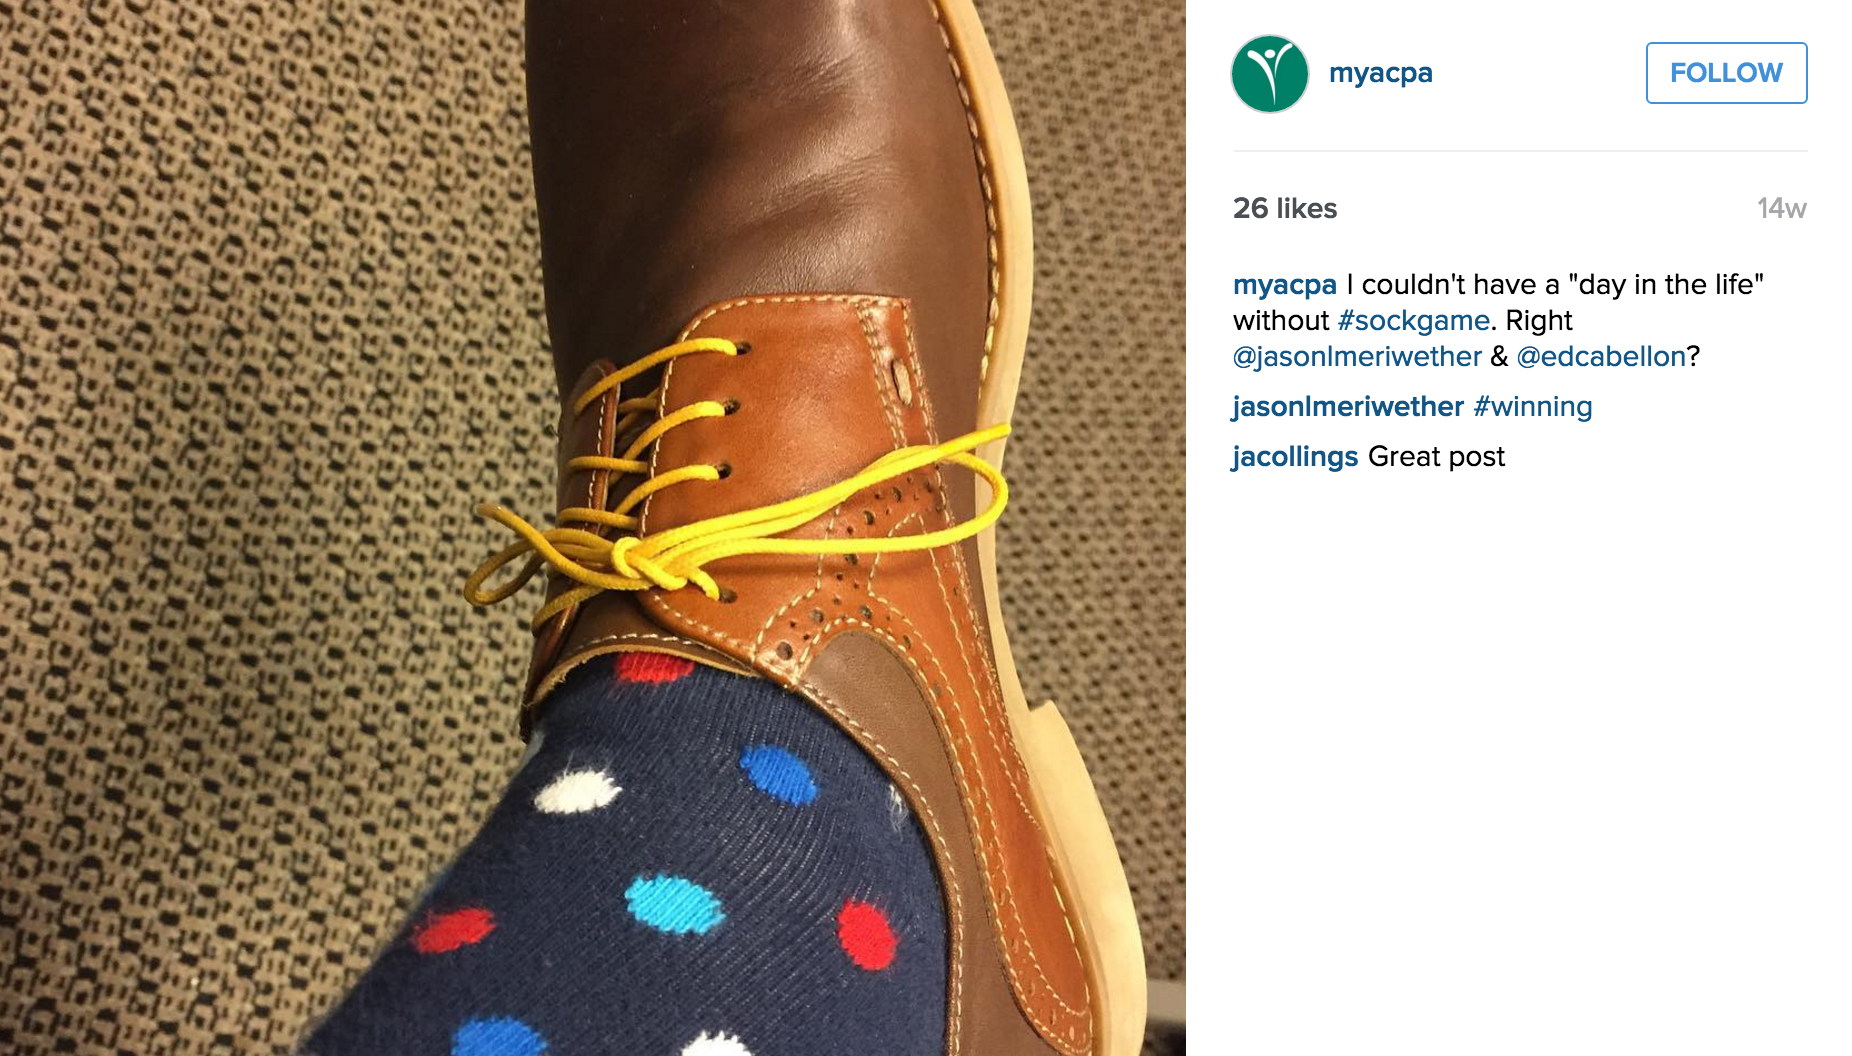 ACPA's President, Gavin Henning posting his stylish look on a day he took over their instagram account. He went with #sockgame that not only is a popular tag but also showed his personality.